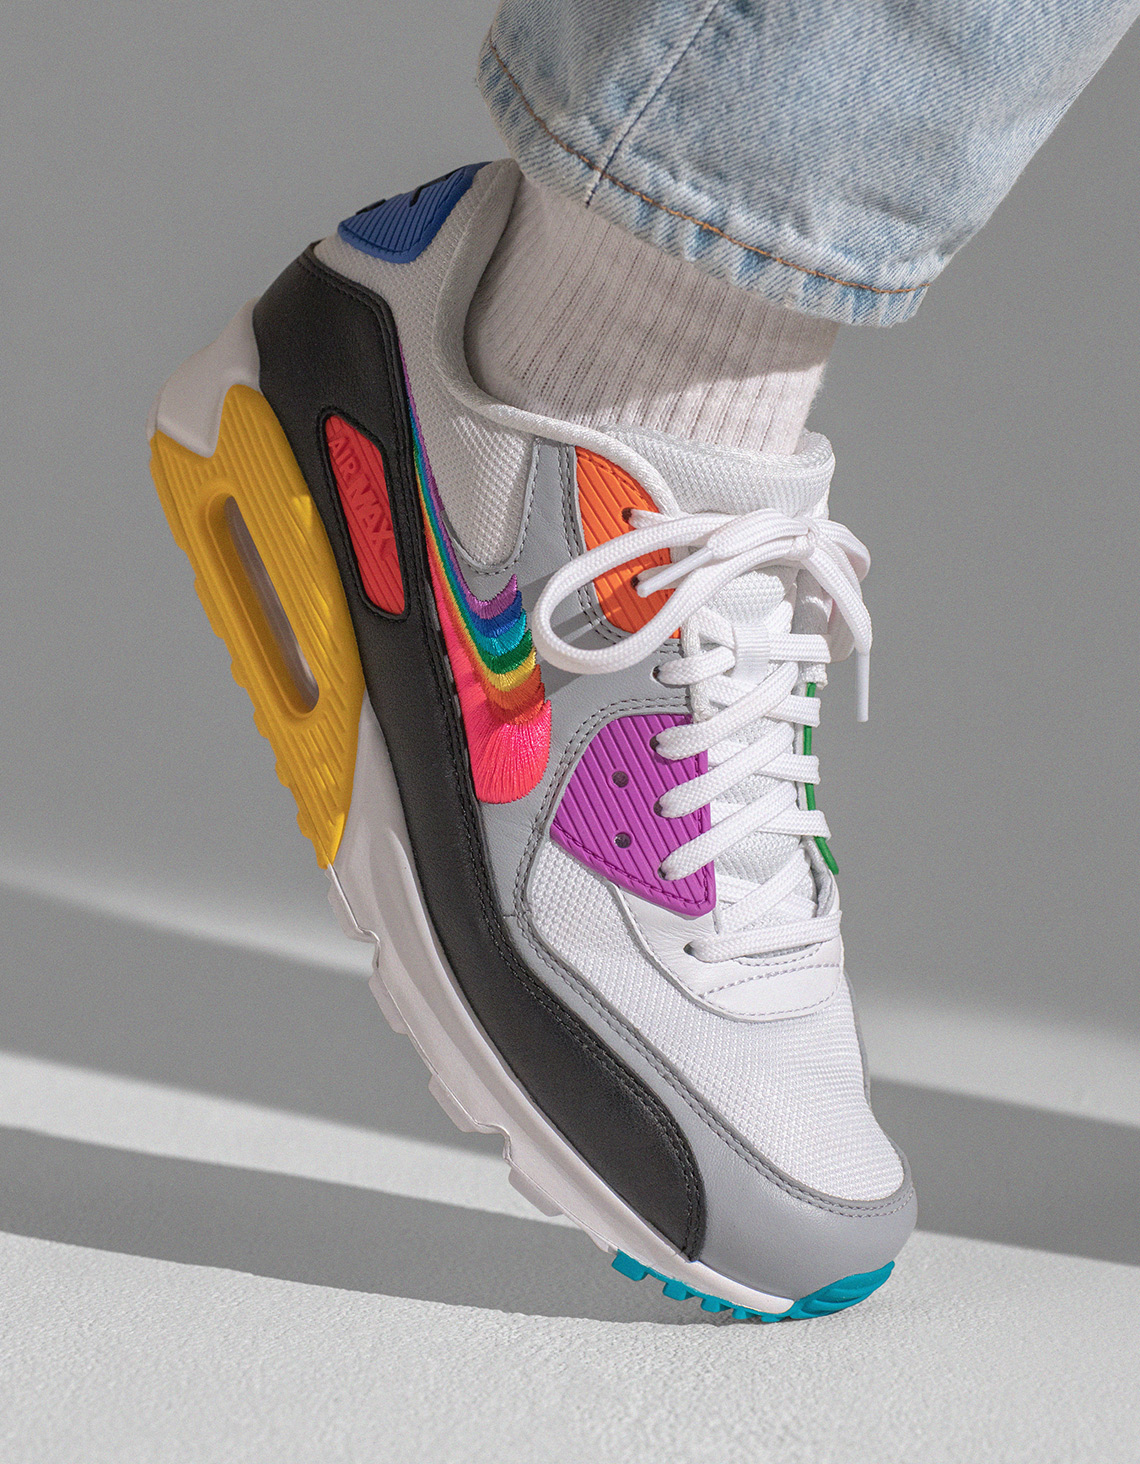 Nike Air Max 9 Lgbt Hot Sale, UP TO 65% OFF